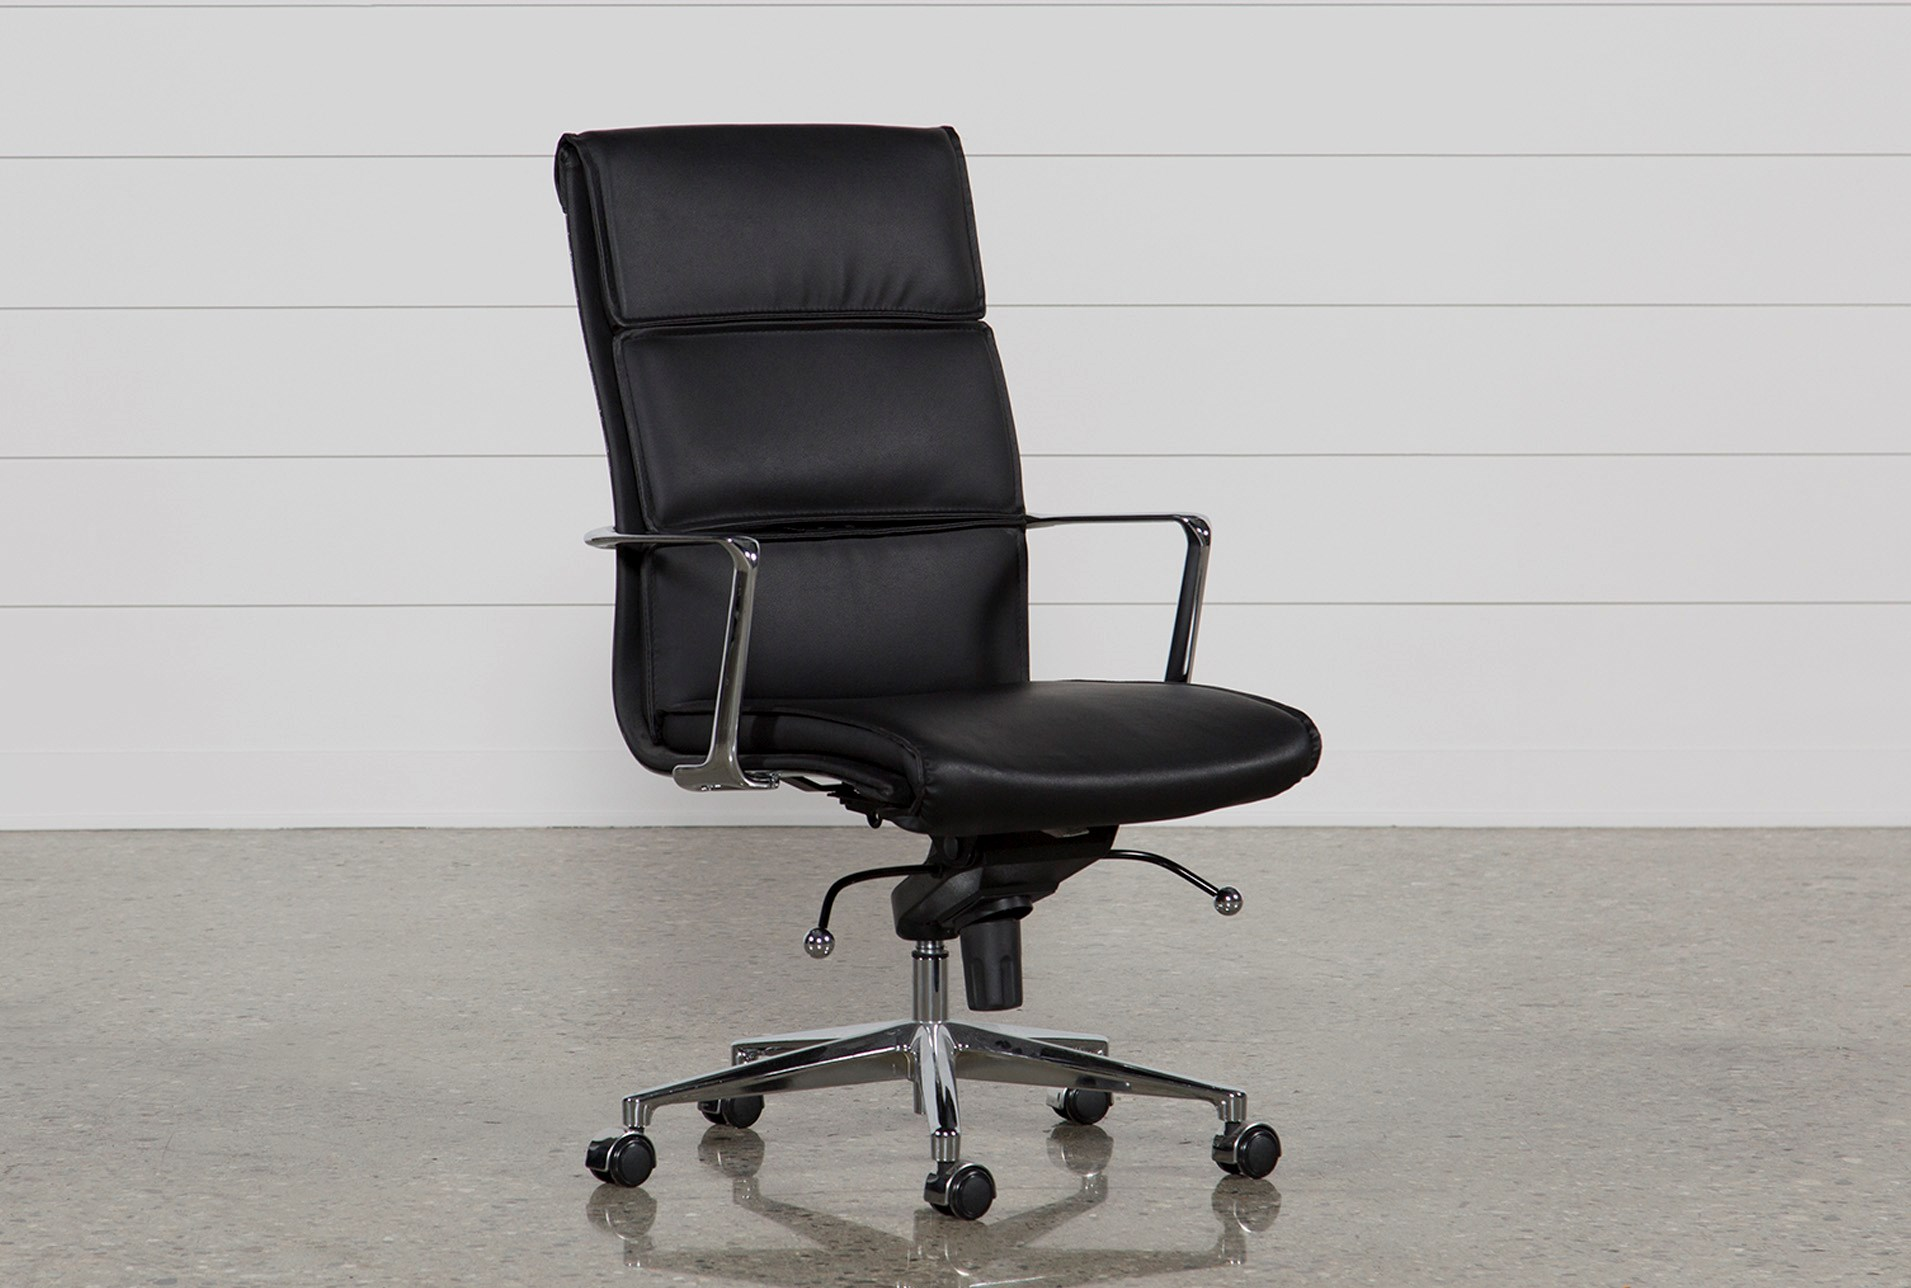 Office Chairs For Your Home & Office | Living Spaces